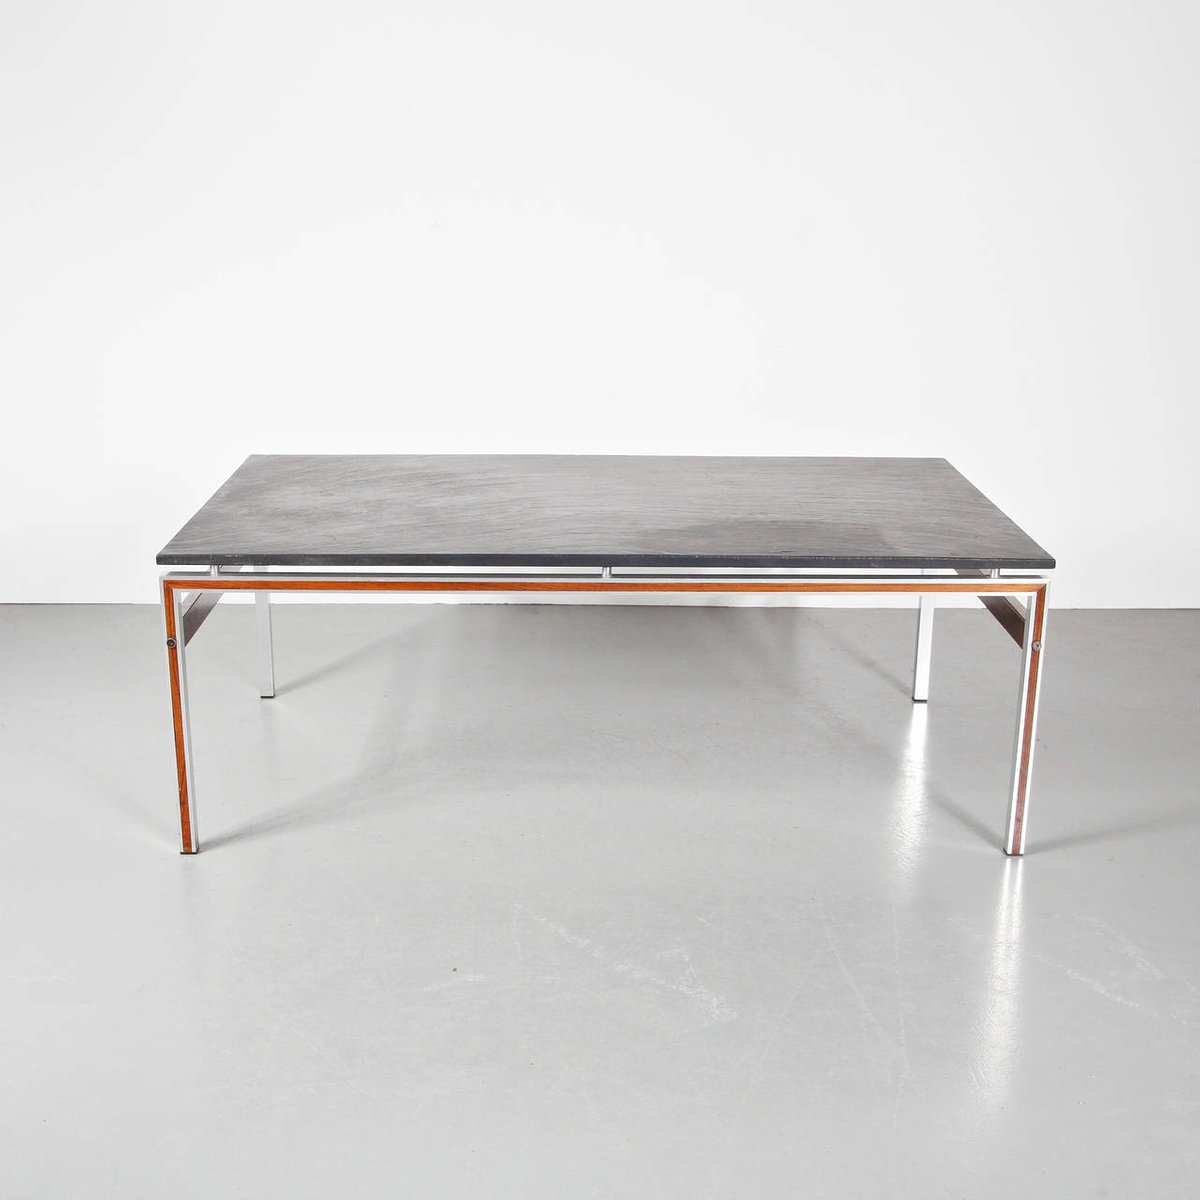 Danish Coffee Table With Slate Stone Top, 1960s